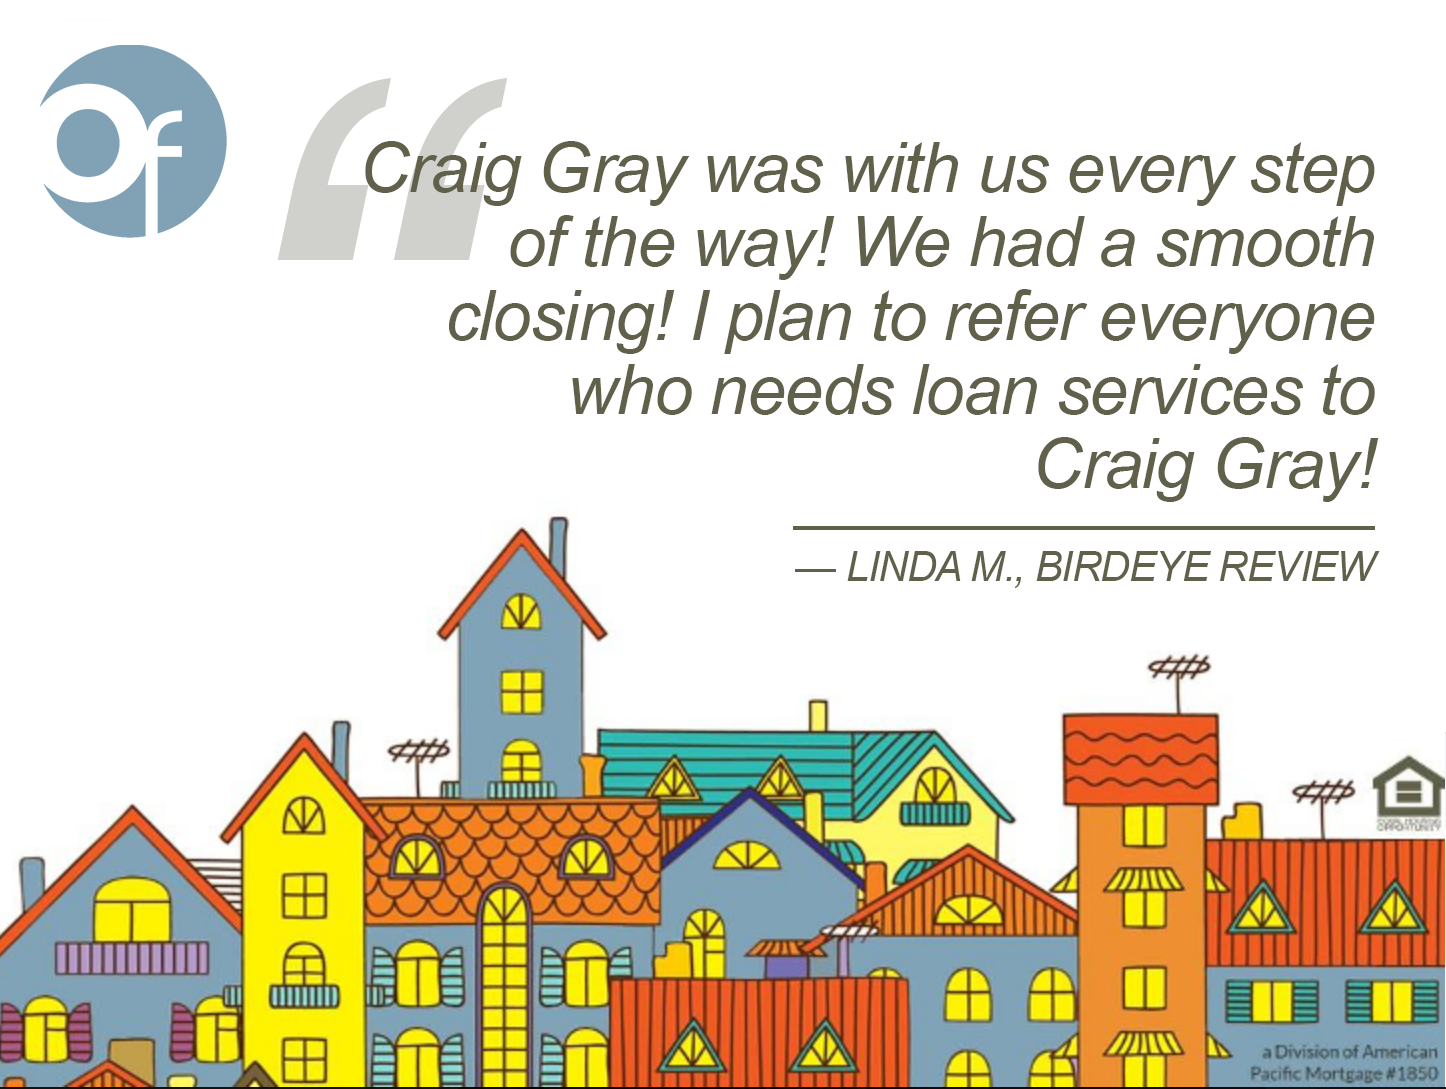 Craig Gray was with us every step of the way! We had a smooth closing! I plan to refer everyone who needs loan services to Craig Gray!